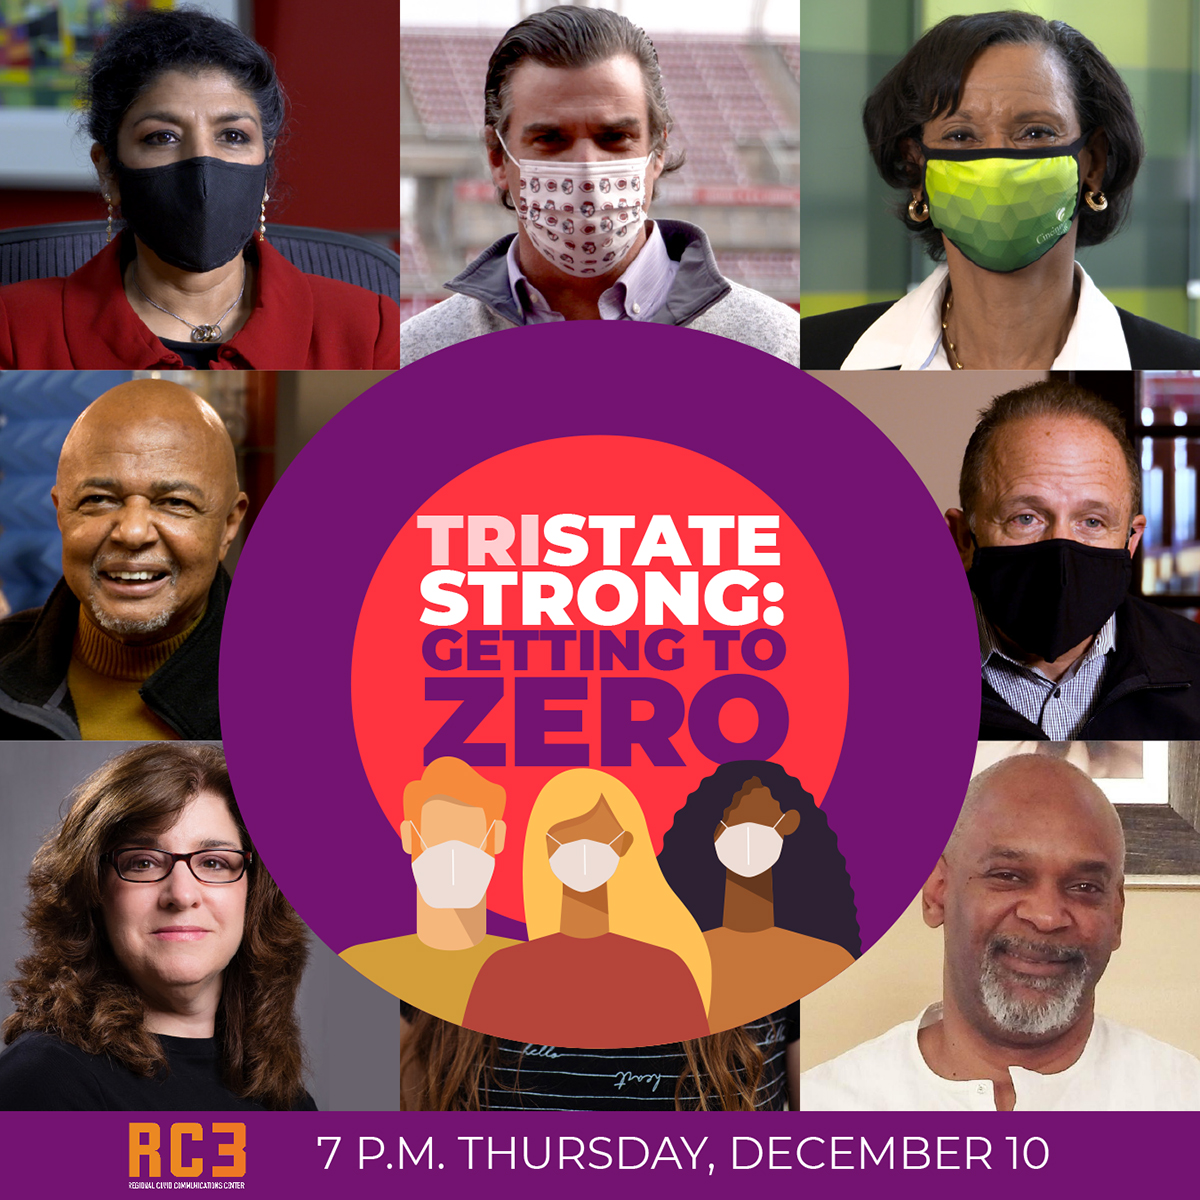 Everyone has the power to do SOMETHING. Tune in TONIGHT at 7 p.m. to #TriState Strong: Getting to Zero to be inspired by how your neighbors & familiar faces from health care, media and business have pulled together https://t.co/nUAbZlSMEK #TriStateStrong #GettingToZero https://t.co/LUvE1p6nYz